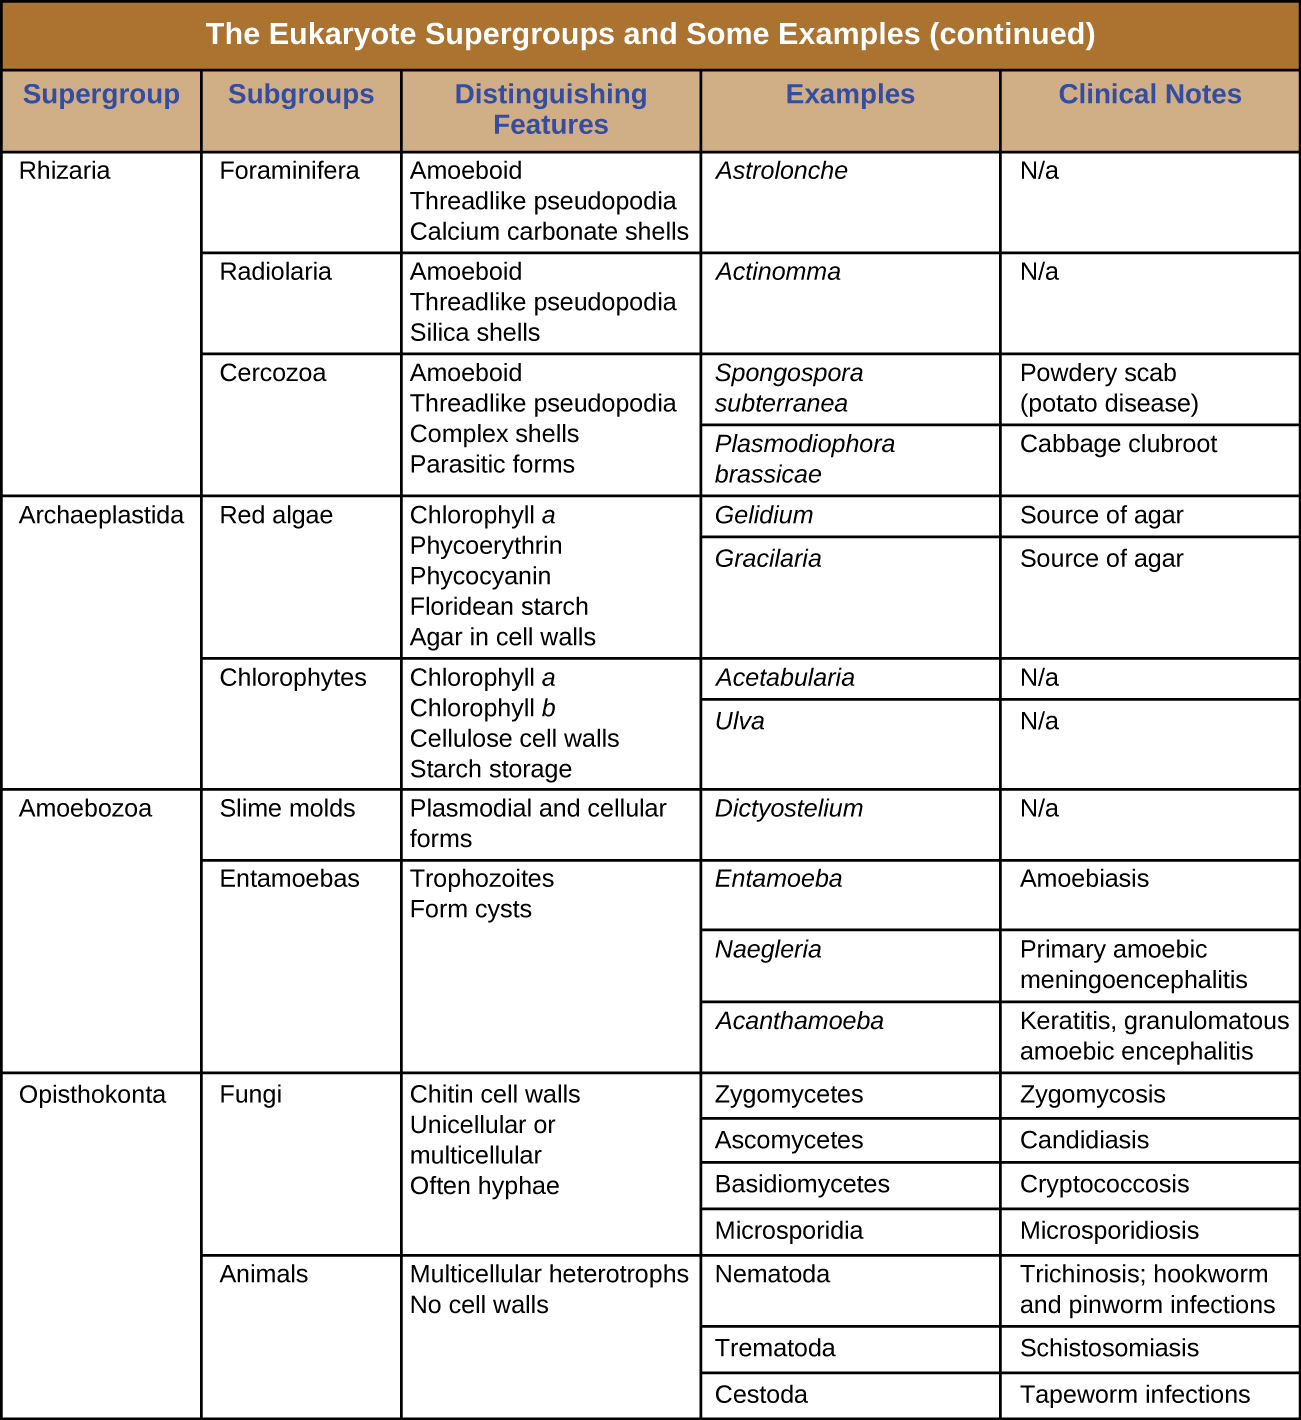 Table titled: the eukaryote supergroups and some example species. There are 5 columns in the table: supergroup, subgroup, distinguishing features, examples and clinical notes. The supergroup Rhizaria is divided into 3 subroups: Foraminifera, Radiolaria, and Cerozoa. Foraminifer have the following distinguishing features: amoeboid, thereadlike pseudopodia, calclium carbonate shells. An example is Astrolonche which does not cause disease. Radiolaria have the following distinguishing features: amoeboid, threadlike pseudopodia, silica shells. An example is Actinomma which does not cause disease. Cerozoa have the following distinguishing features: amoeboid, threadlike pseudopodia, complex shells, parasitic forms. Examples include Spongospora subterranean which causes powdery scab (potato disease) and Plasmodiophora brassicae which causes cabbage clubroot. Supergroup Archaeplastida is divided into 2 groups: red algae and Chlorophytes. Red algae have the following distinguishing features: chlorophyll a, phycoerythrin, phycocyanin, flodean starch, agar in cell walls. Examples include Gelidium and Gracilaria which are sources of agar. Chlorophytes have the following distinguishing features: chlorphyll a, chlorophyll b, cellulose cell walls, starch storage. Examples include Acetabularia and Ulva which do not cause disease. Supergroup Amoebozoa is divided into 2 subgroups: slime molds and entamoebas. Slime molds have plasmodial and cellular forms. An example is Dictyostelium which does not cause disease. Entamoebas have the following distinguishing features: trophozoites and form cysts. Examples include Entamoeba which causes Amoebiasis, Naegleria which causes Primary amoebic meningoencephalitis, and Acanthamoeba which causes Keratitis, and granulomatous ameoebic encephalitis. Supergroup Opisthokonta is divided into subroups fungin and animals. Fungi have the following distinguishing features: chitin cell walls, unicellular or multicellular, often hyphae. Examples include Zygomyctes which cause zygomycosis, Asomycetes which cause Candidiasis, Basidiomycetes which cause Cryptococcosis, and Microsporidia which causes microsporidiosis. Animals have the following distinguishing features: multicellular heterotrophs with no cell walls. Examples include Nematoda which cause Trichonosis, hookworm and pinworm infections, Termatoda which causes Schistosomiais, and Cestoda which causes tapeworm infection.